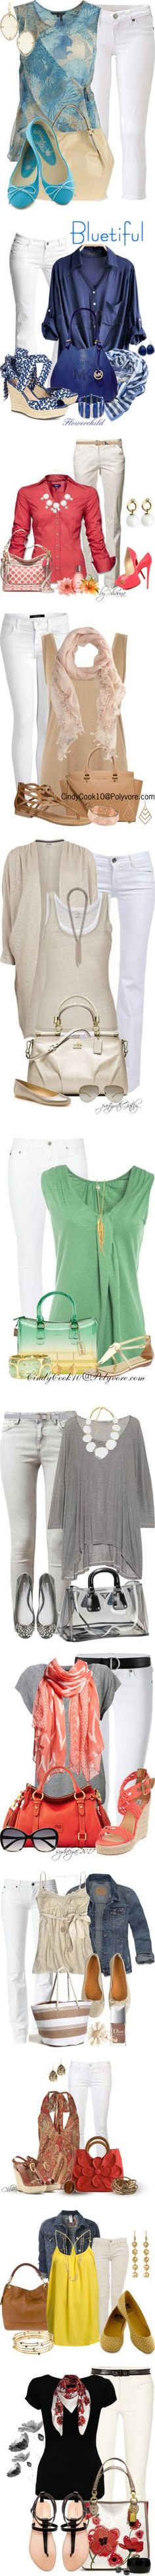 """Let's Wear White"" by esha2001 on Polyvore 